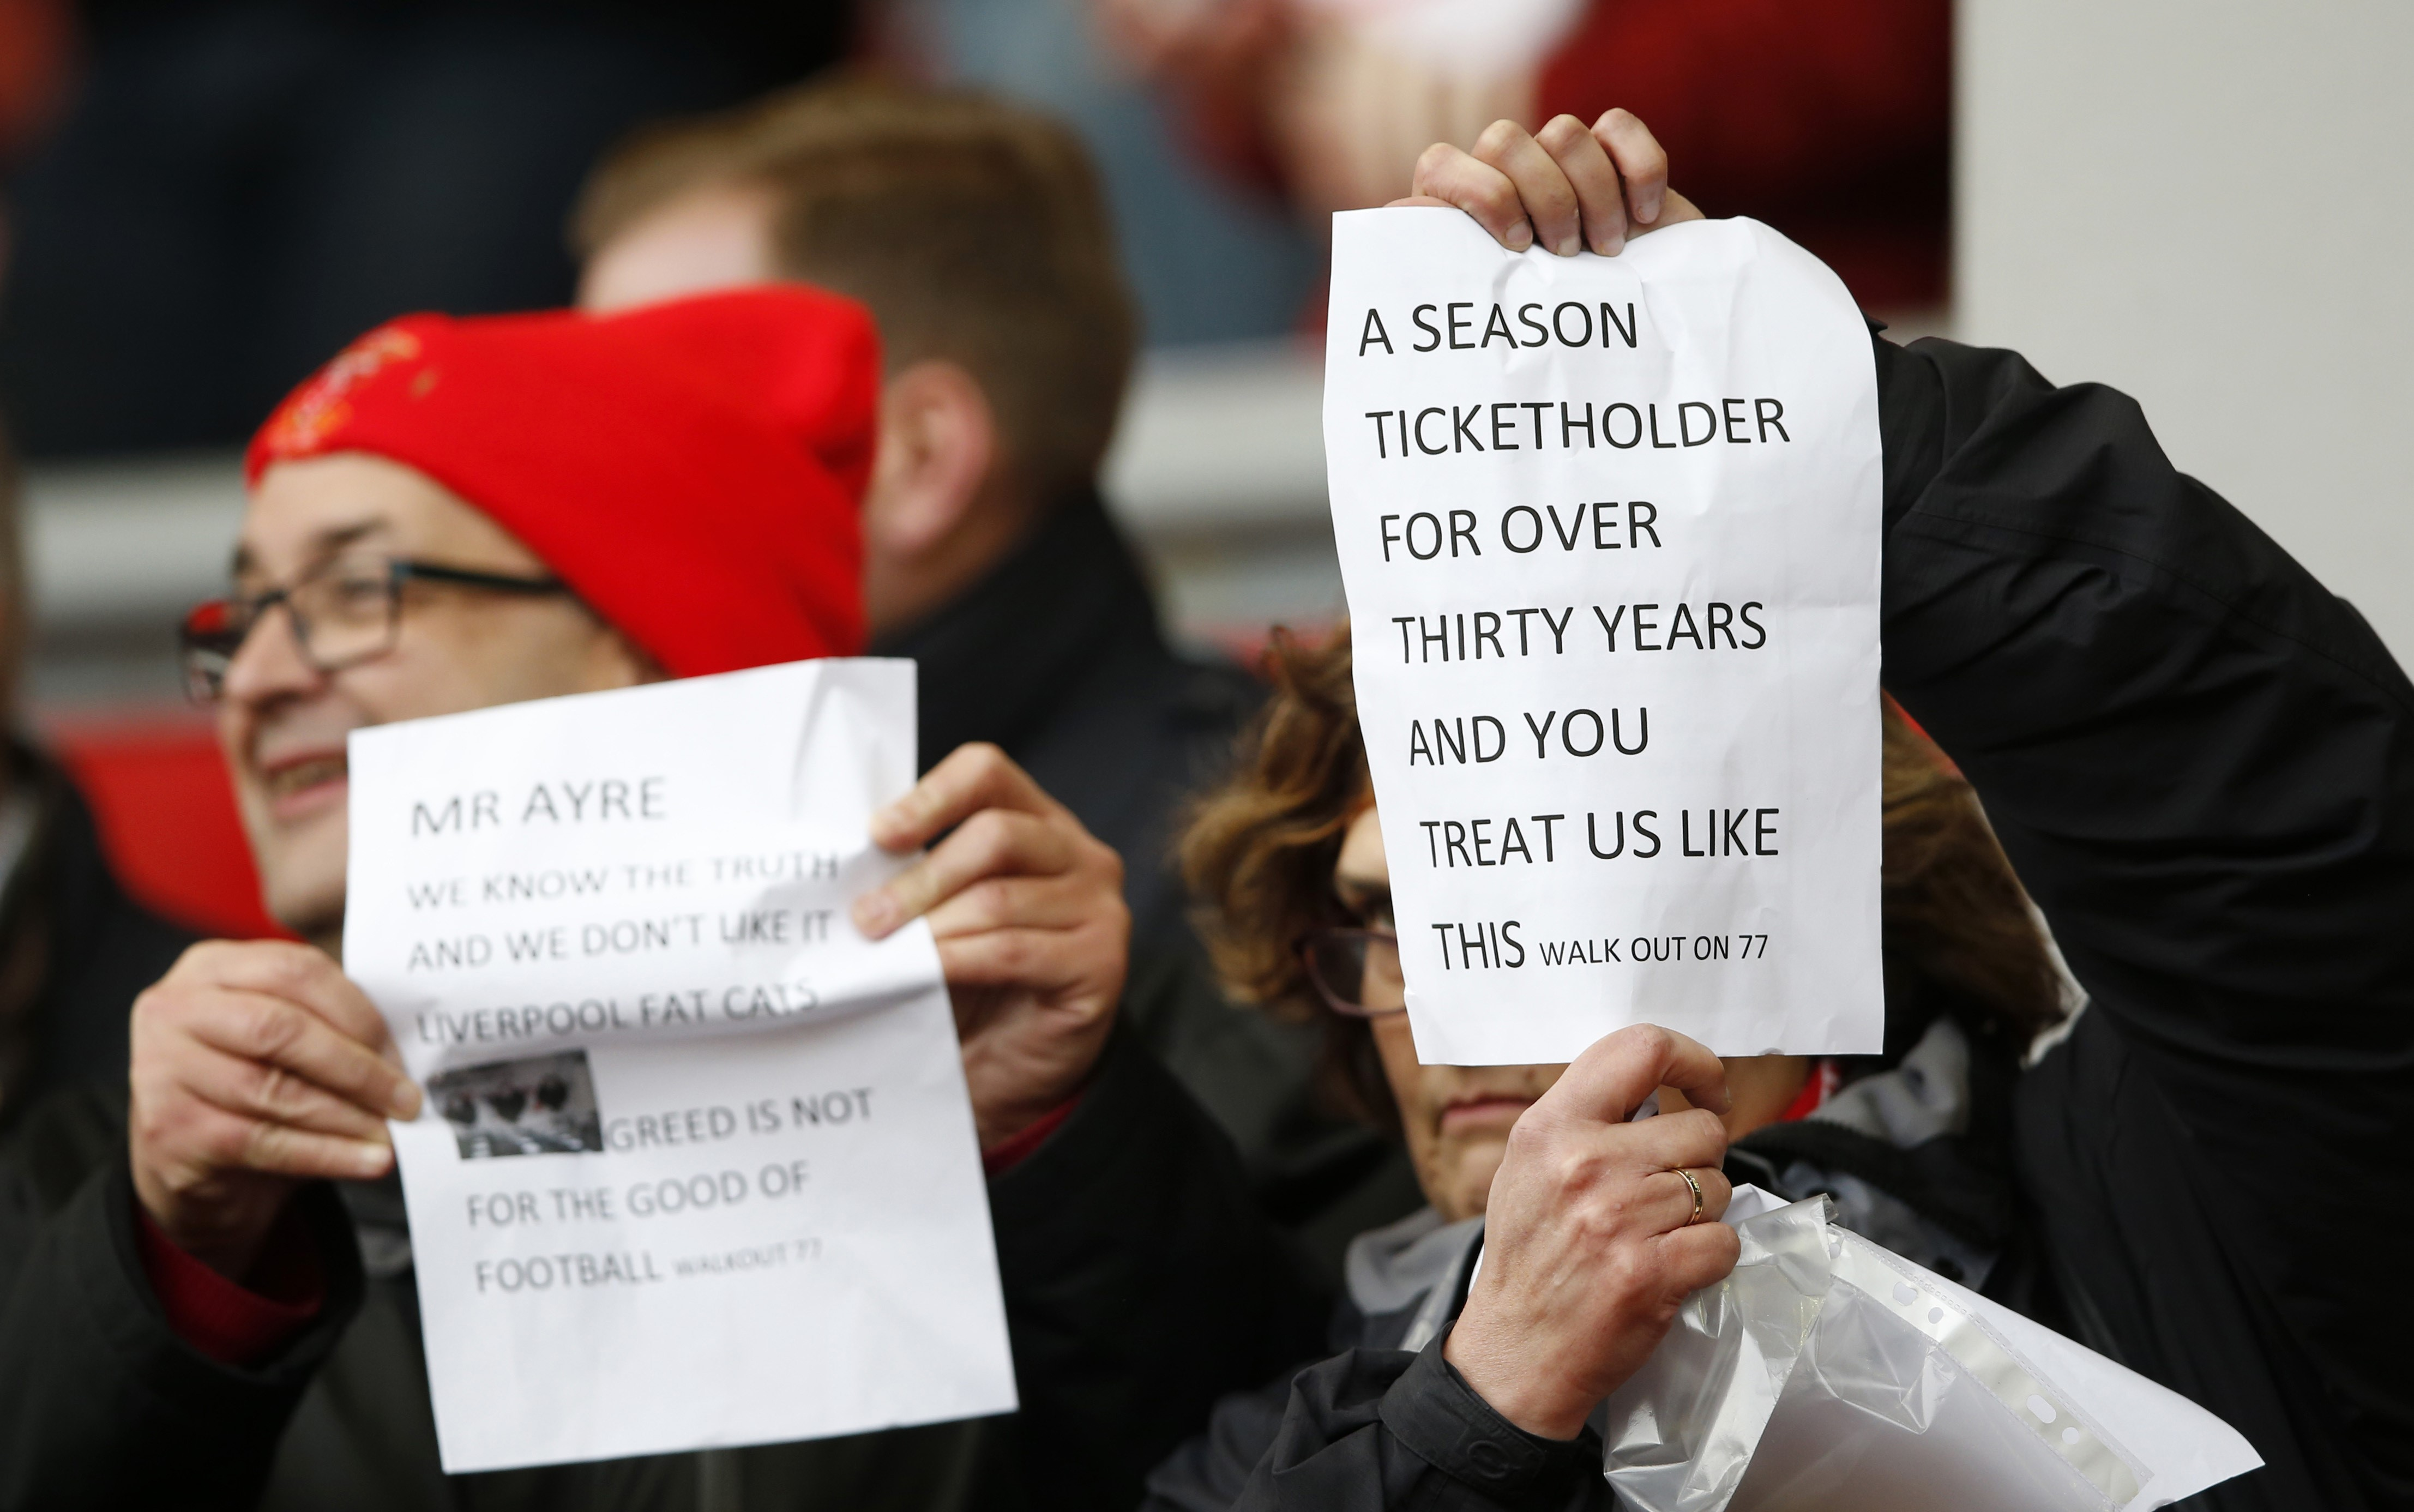 Liverpool fans make their feelings known at Anfield.